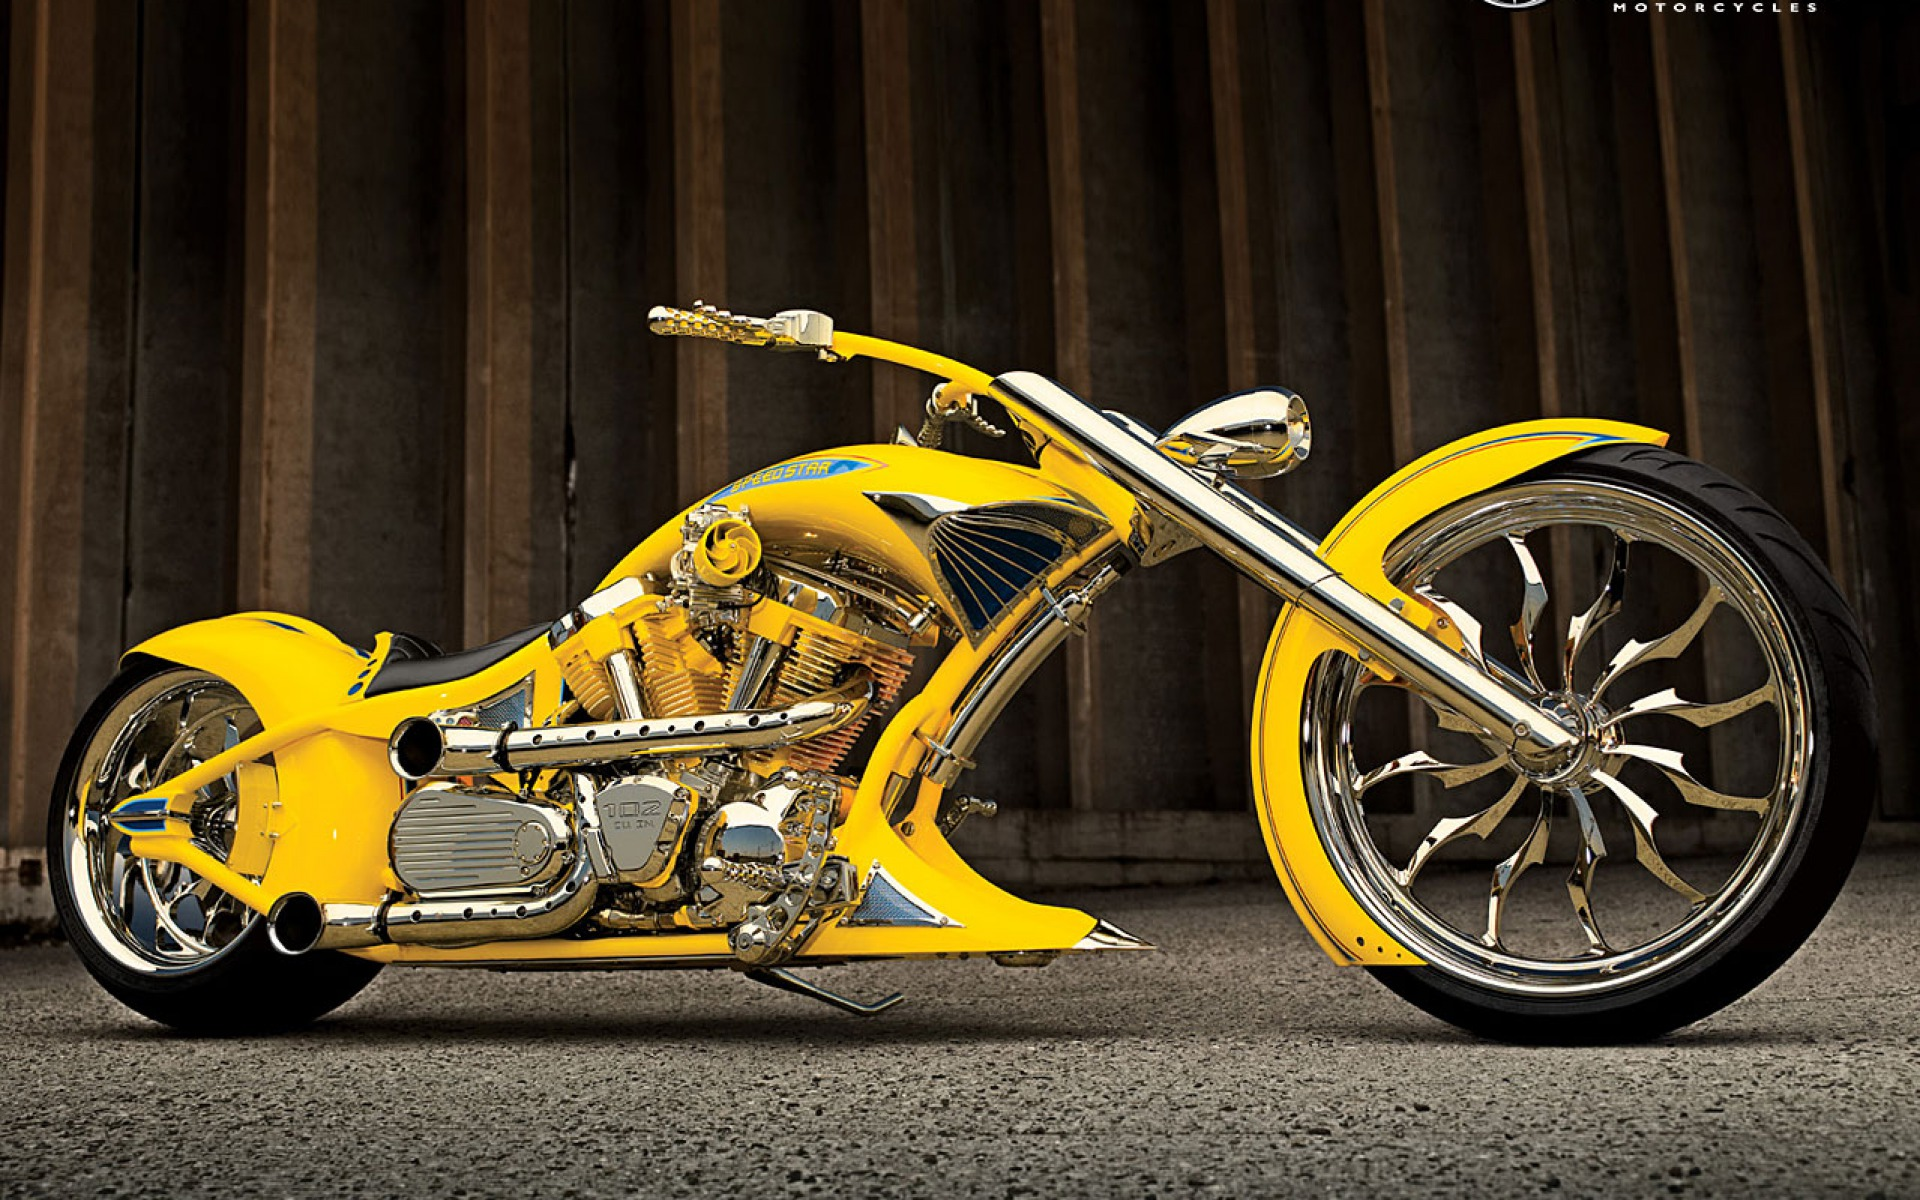 Orange county chopper wallpaper   ForWallpapercom 1920x1200